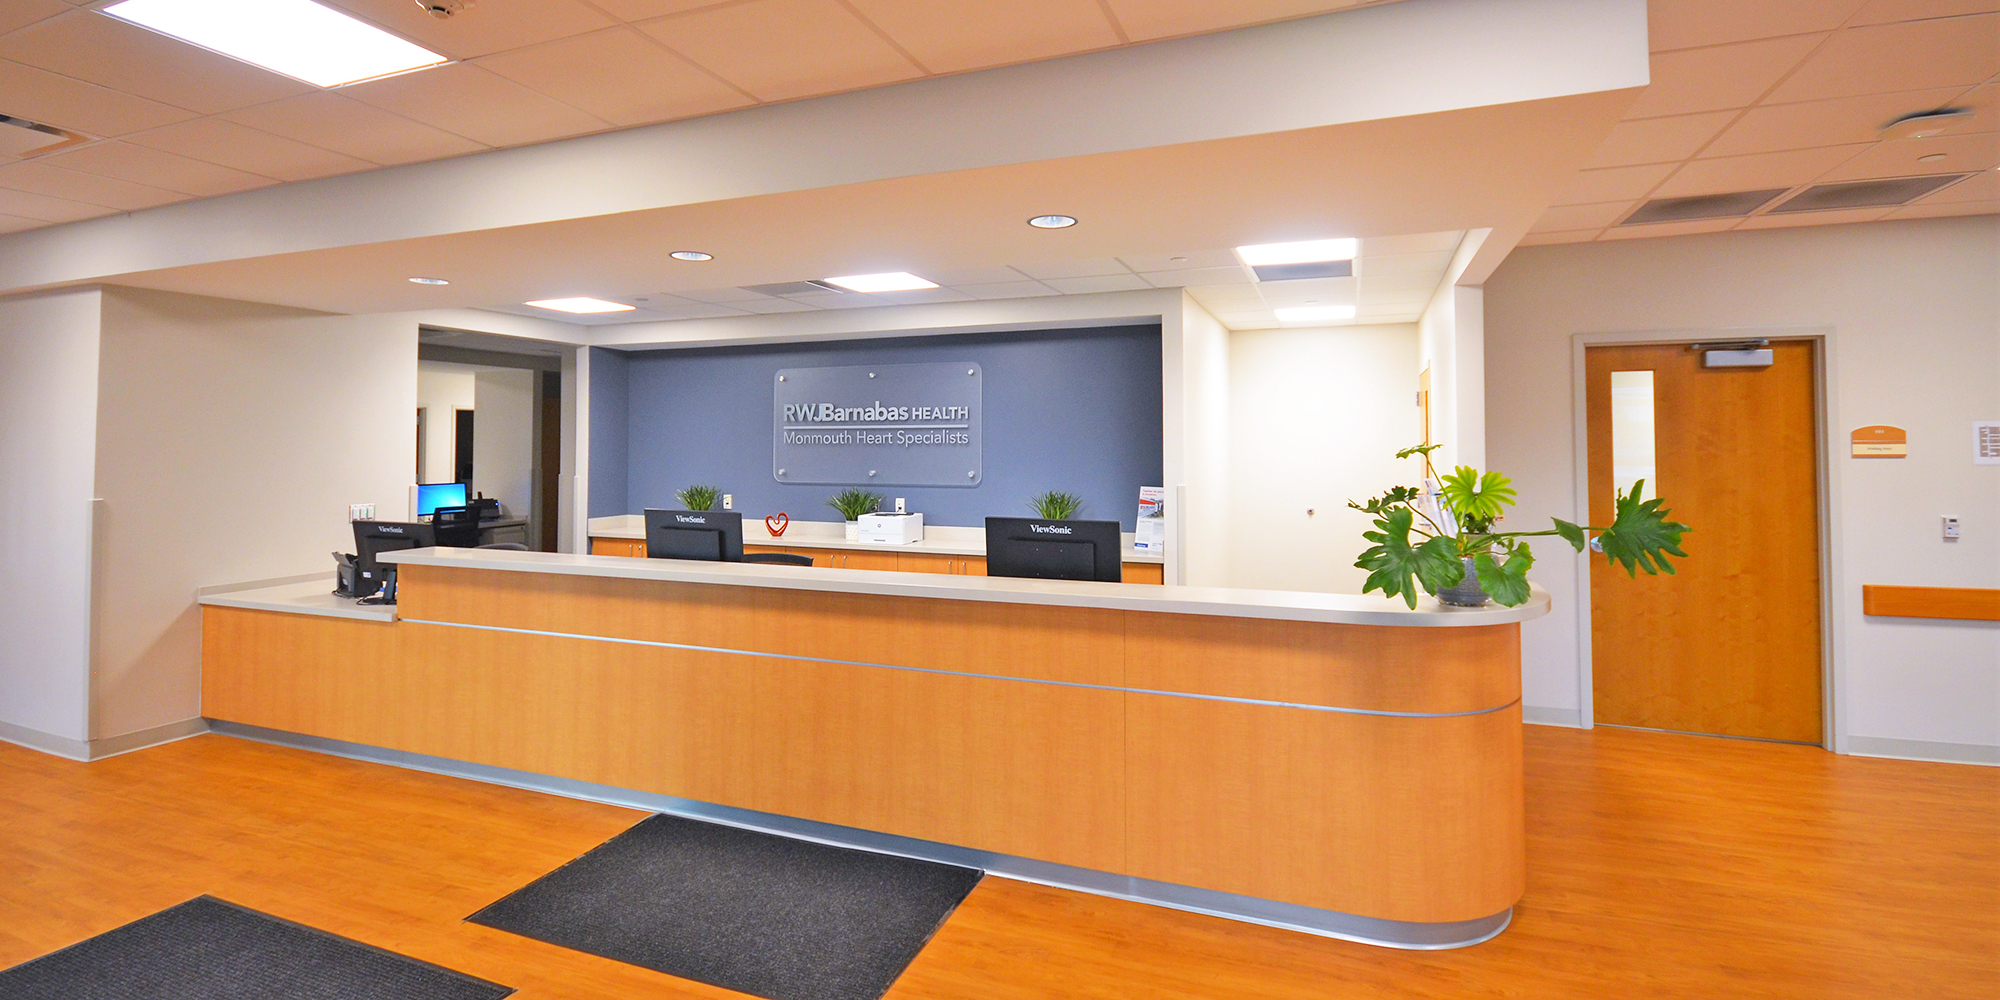 PROJECTS-6-RWJBARNABAS-HEALTH-MONMOUTH-HEALTH-SPECIALISTS